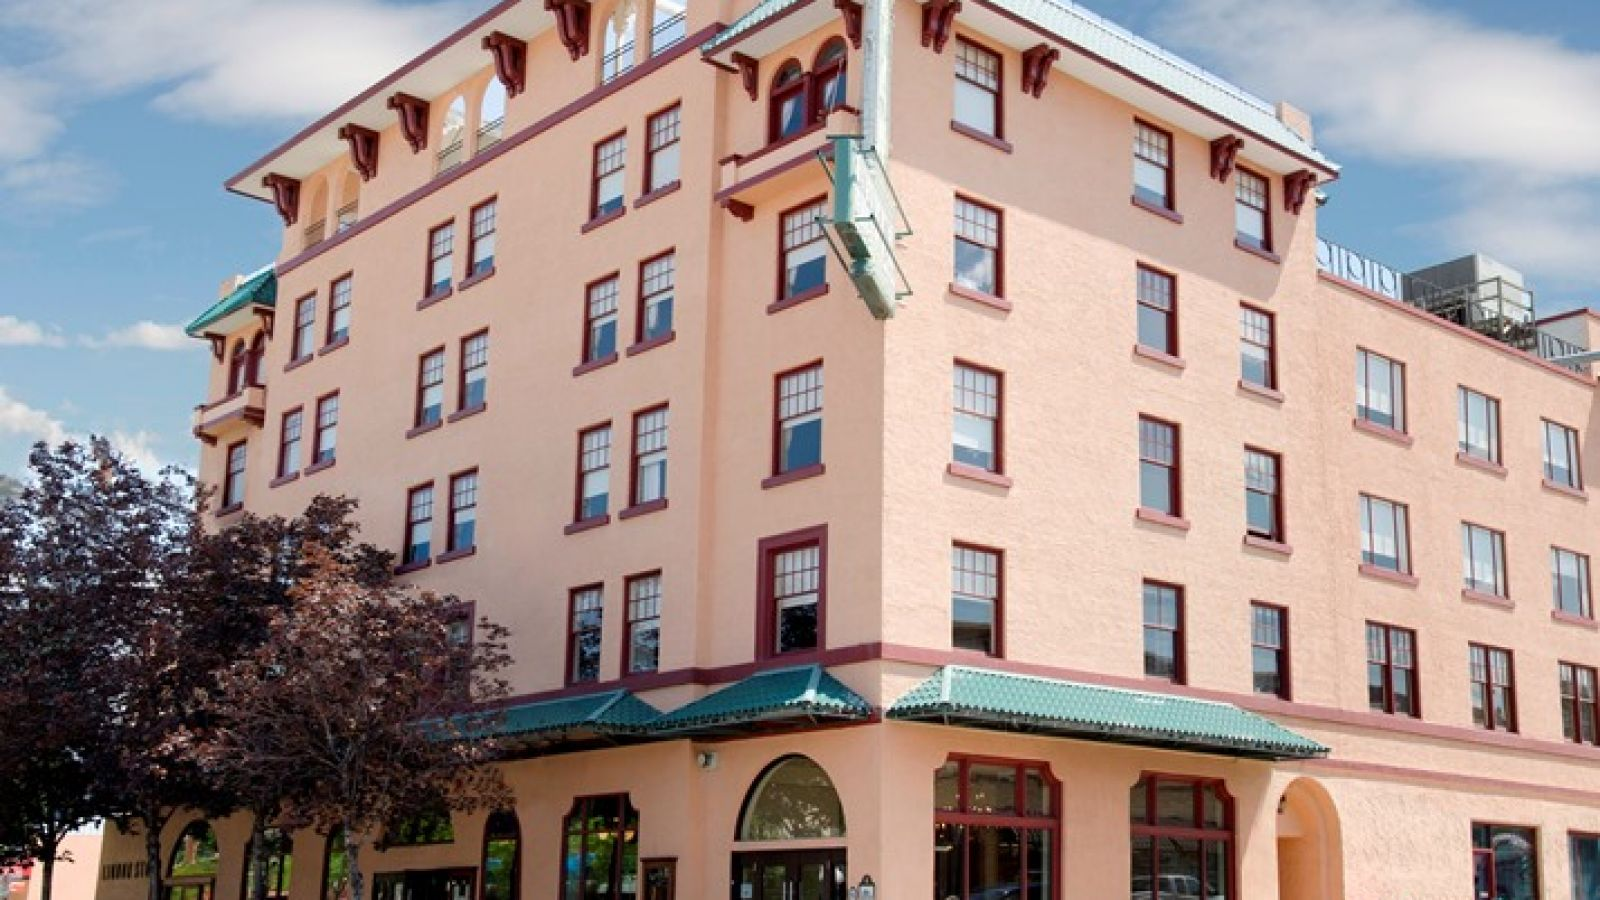 Front View of the Plaza Hotel Kamloops